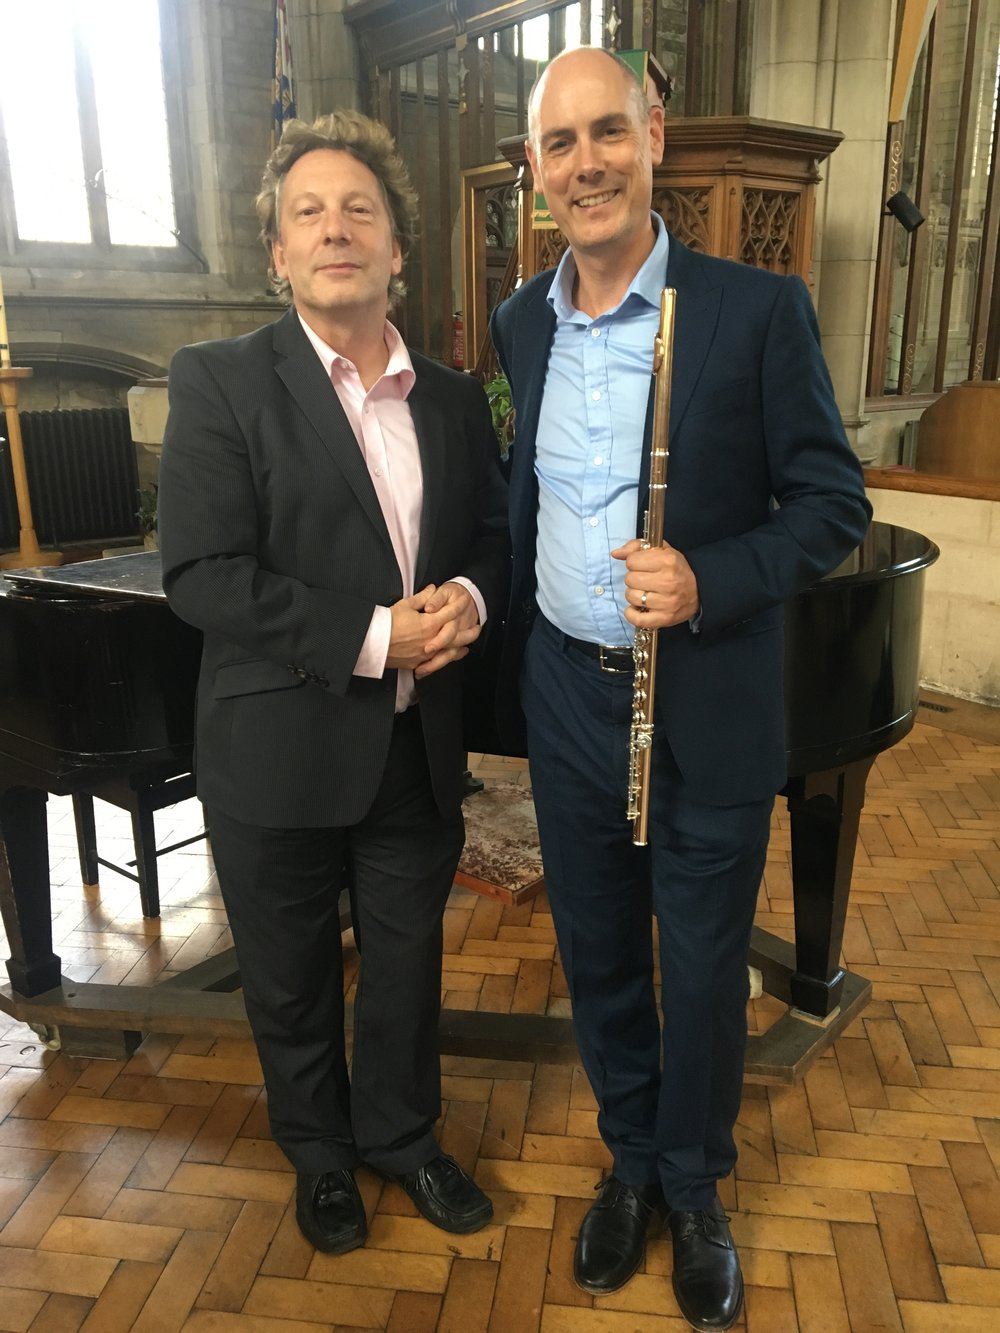 Neil Crossland and James Dutton after their recital in Harrow, Aug 2017